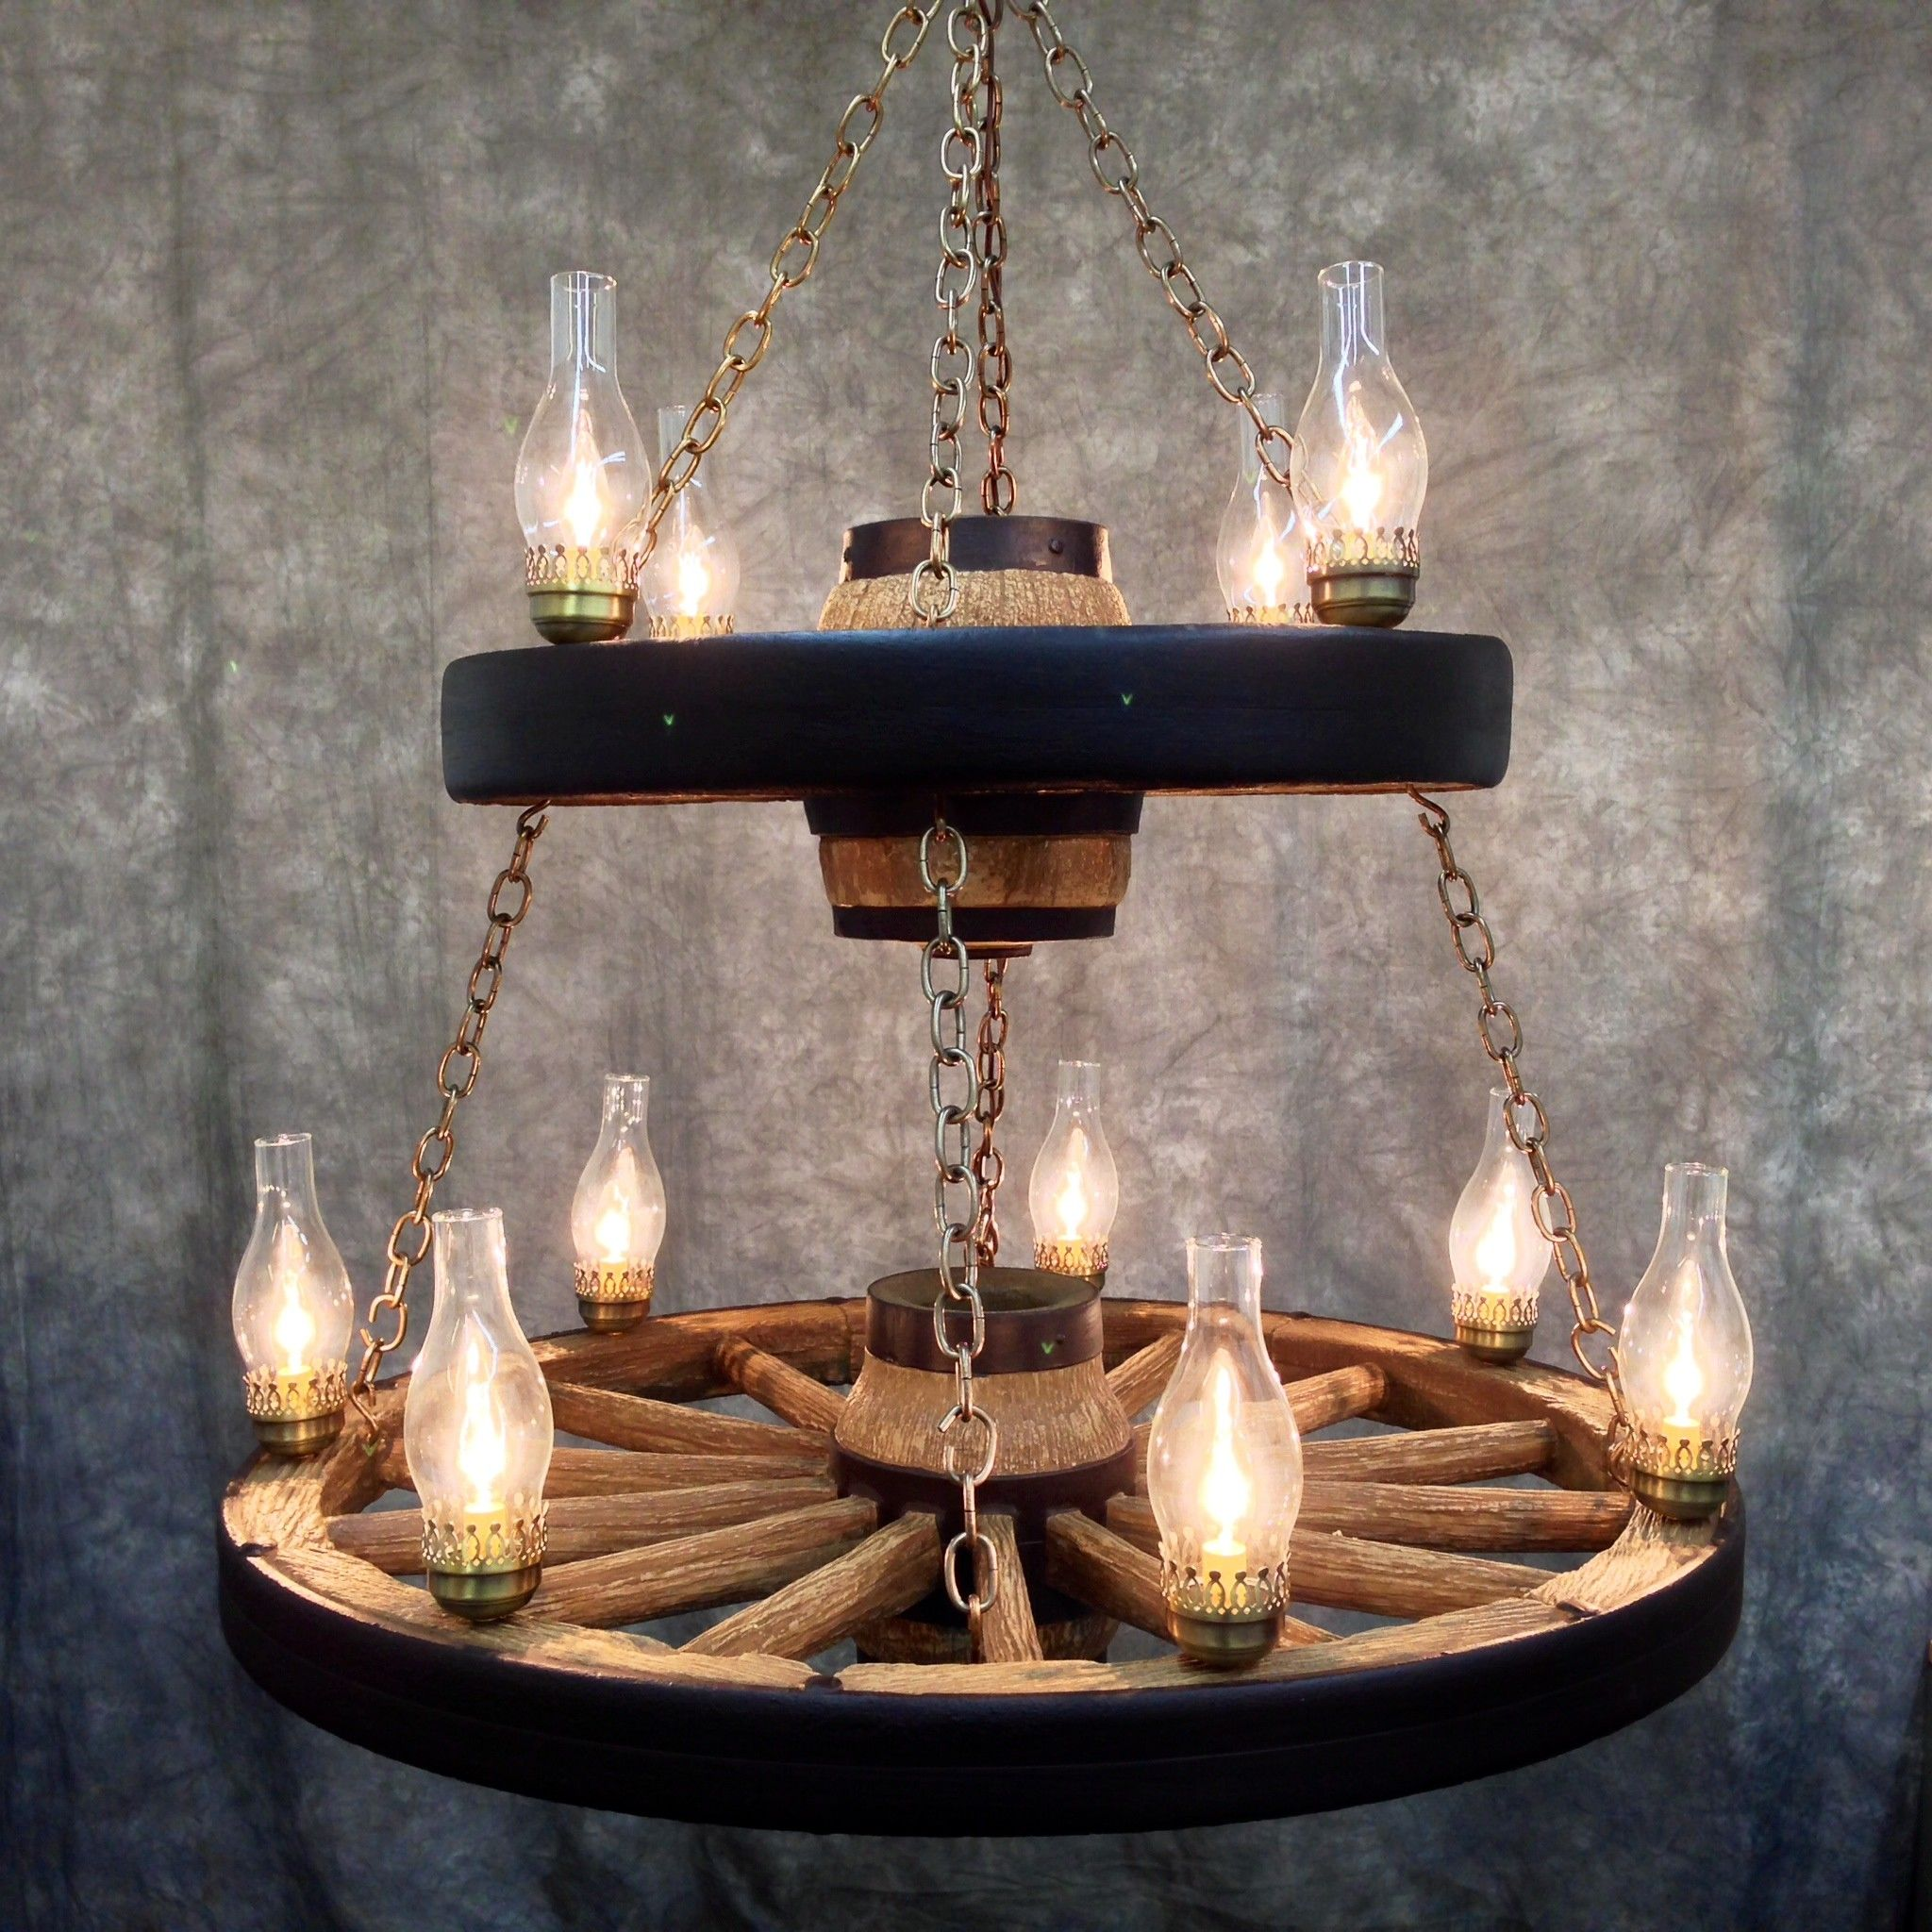 Double Wagon Wheel Chandelier with 11 Chimney Lights | Wagon